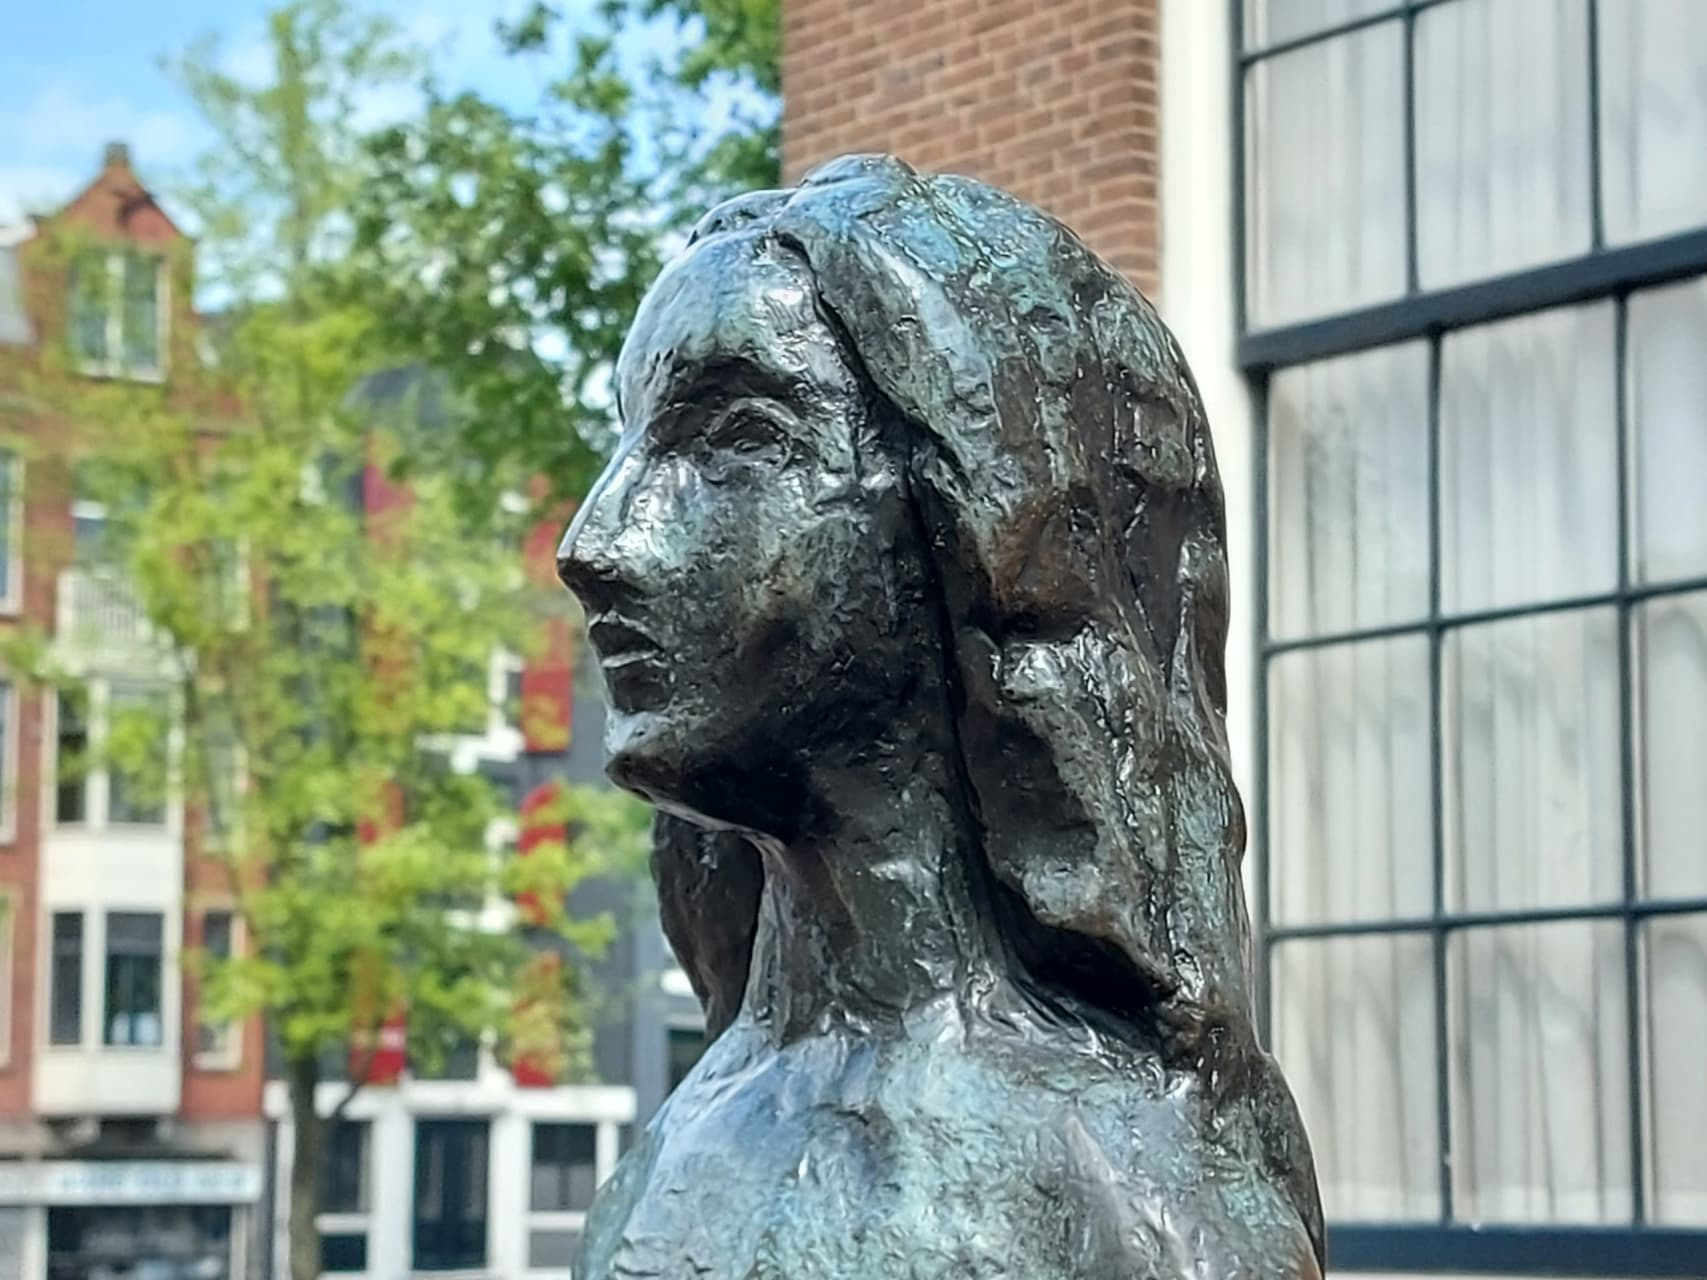 Amsterdam - The Legacy of Anne and Otto Frank